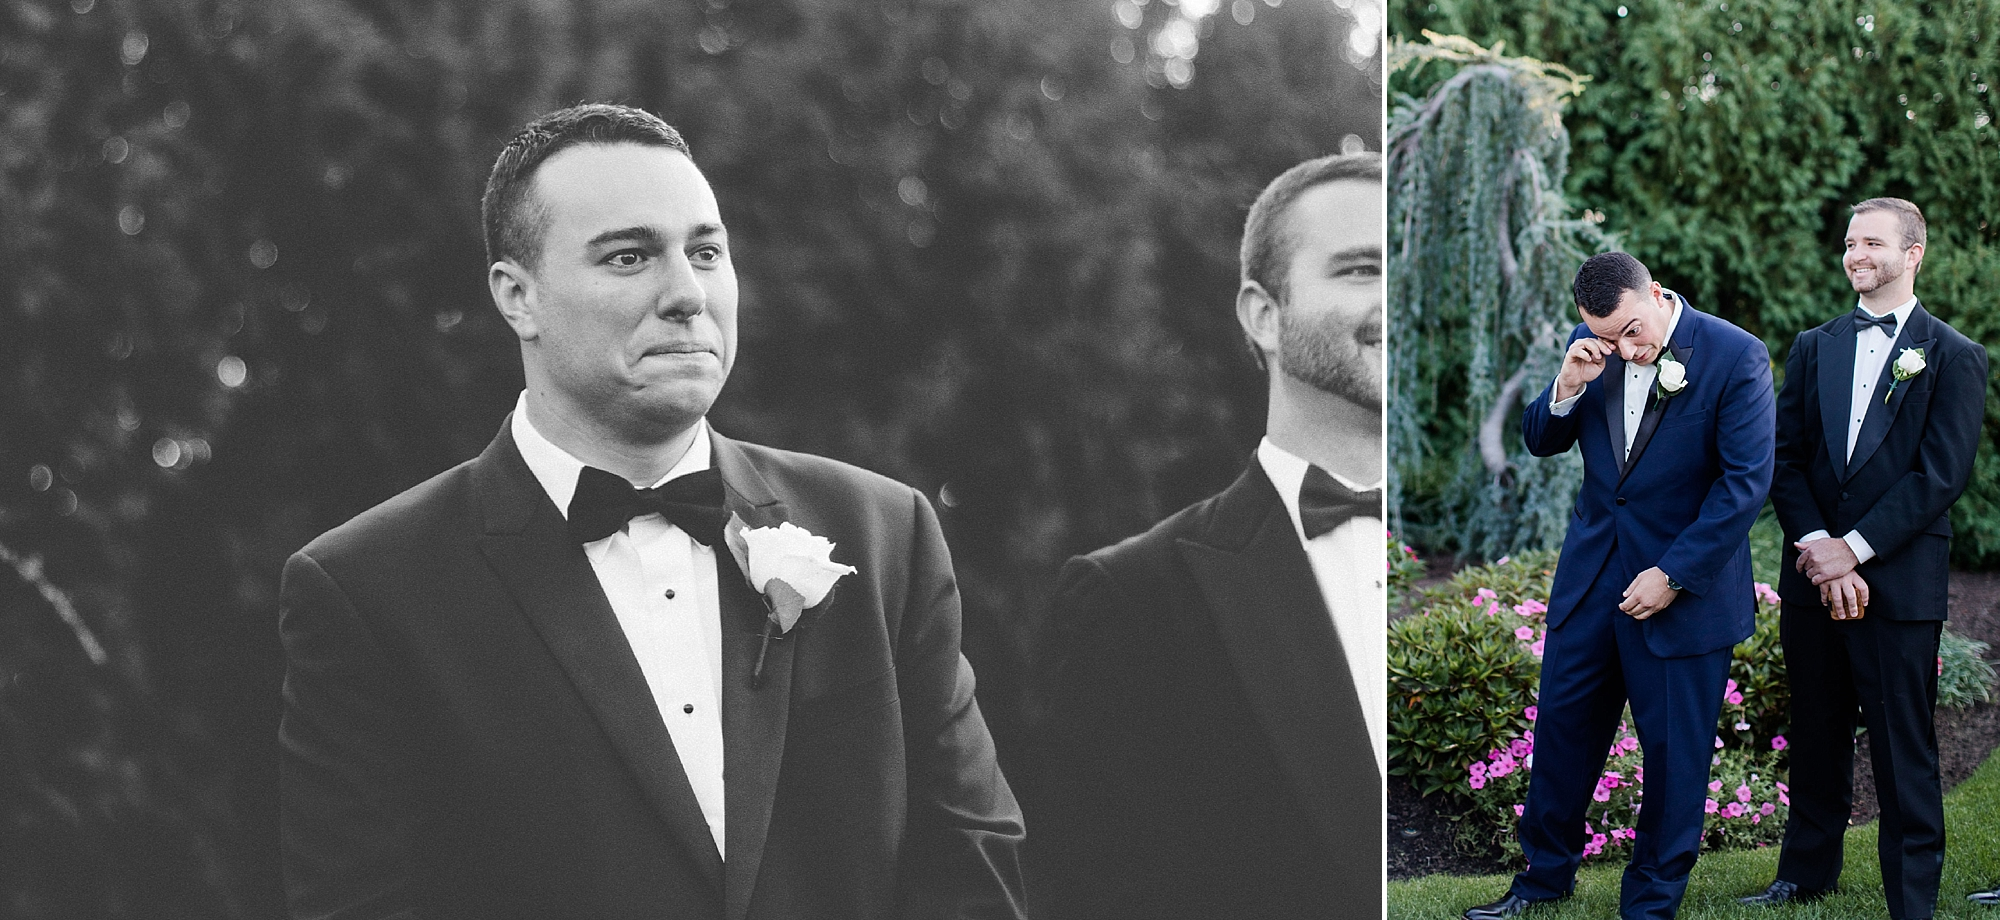 A first moment didn't sour their ceremony aisle first look in the least. The sweetest reaction! We were tearing up behind our cameras